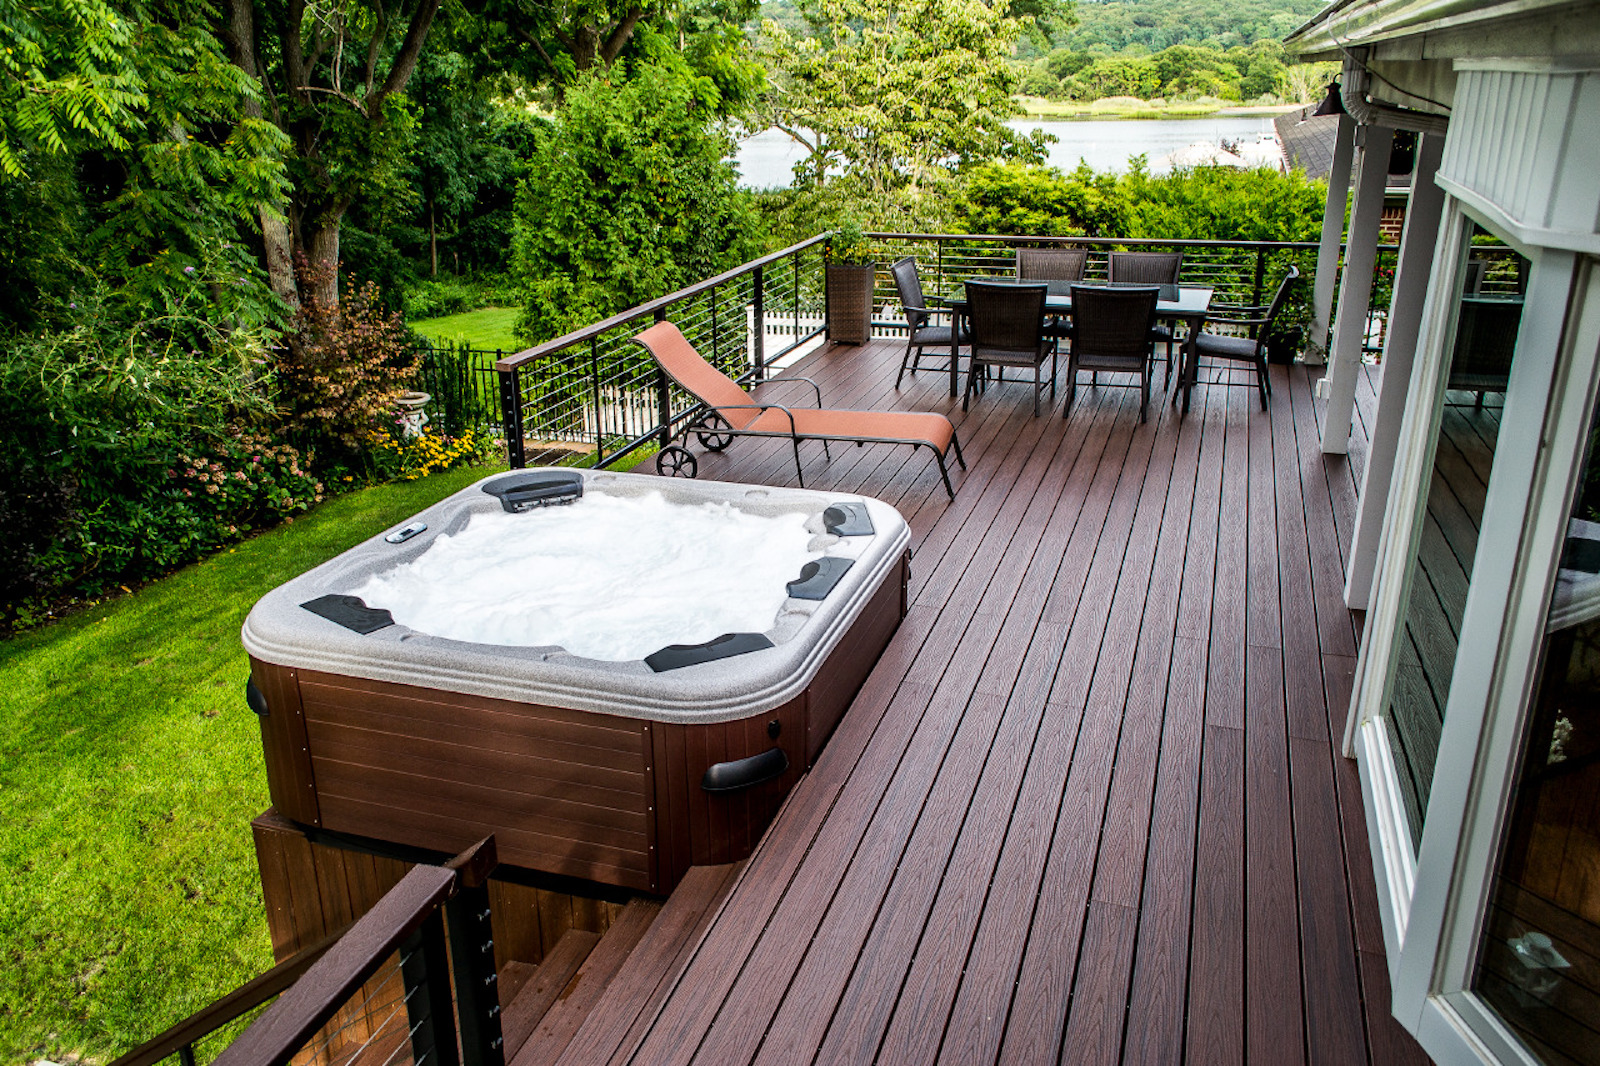 wood deck with hot tub overlooking lush green area [ 1600 x 1066 Pixel ]